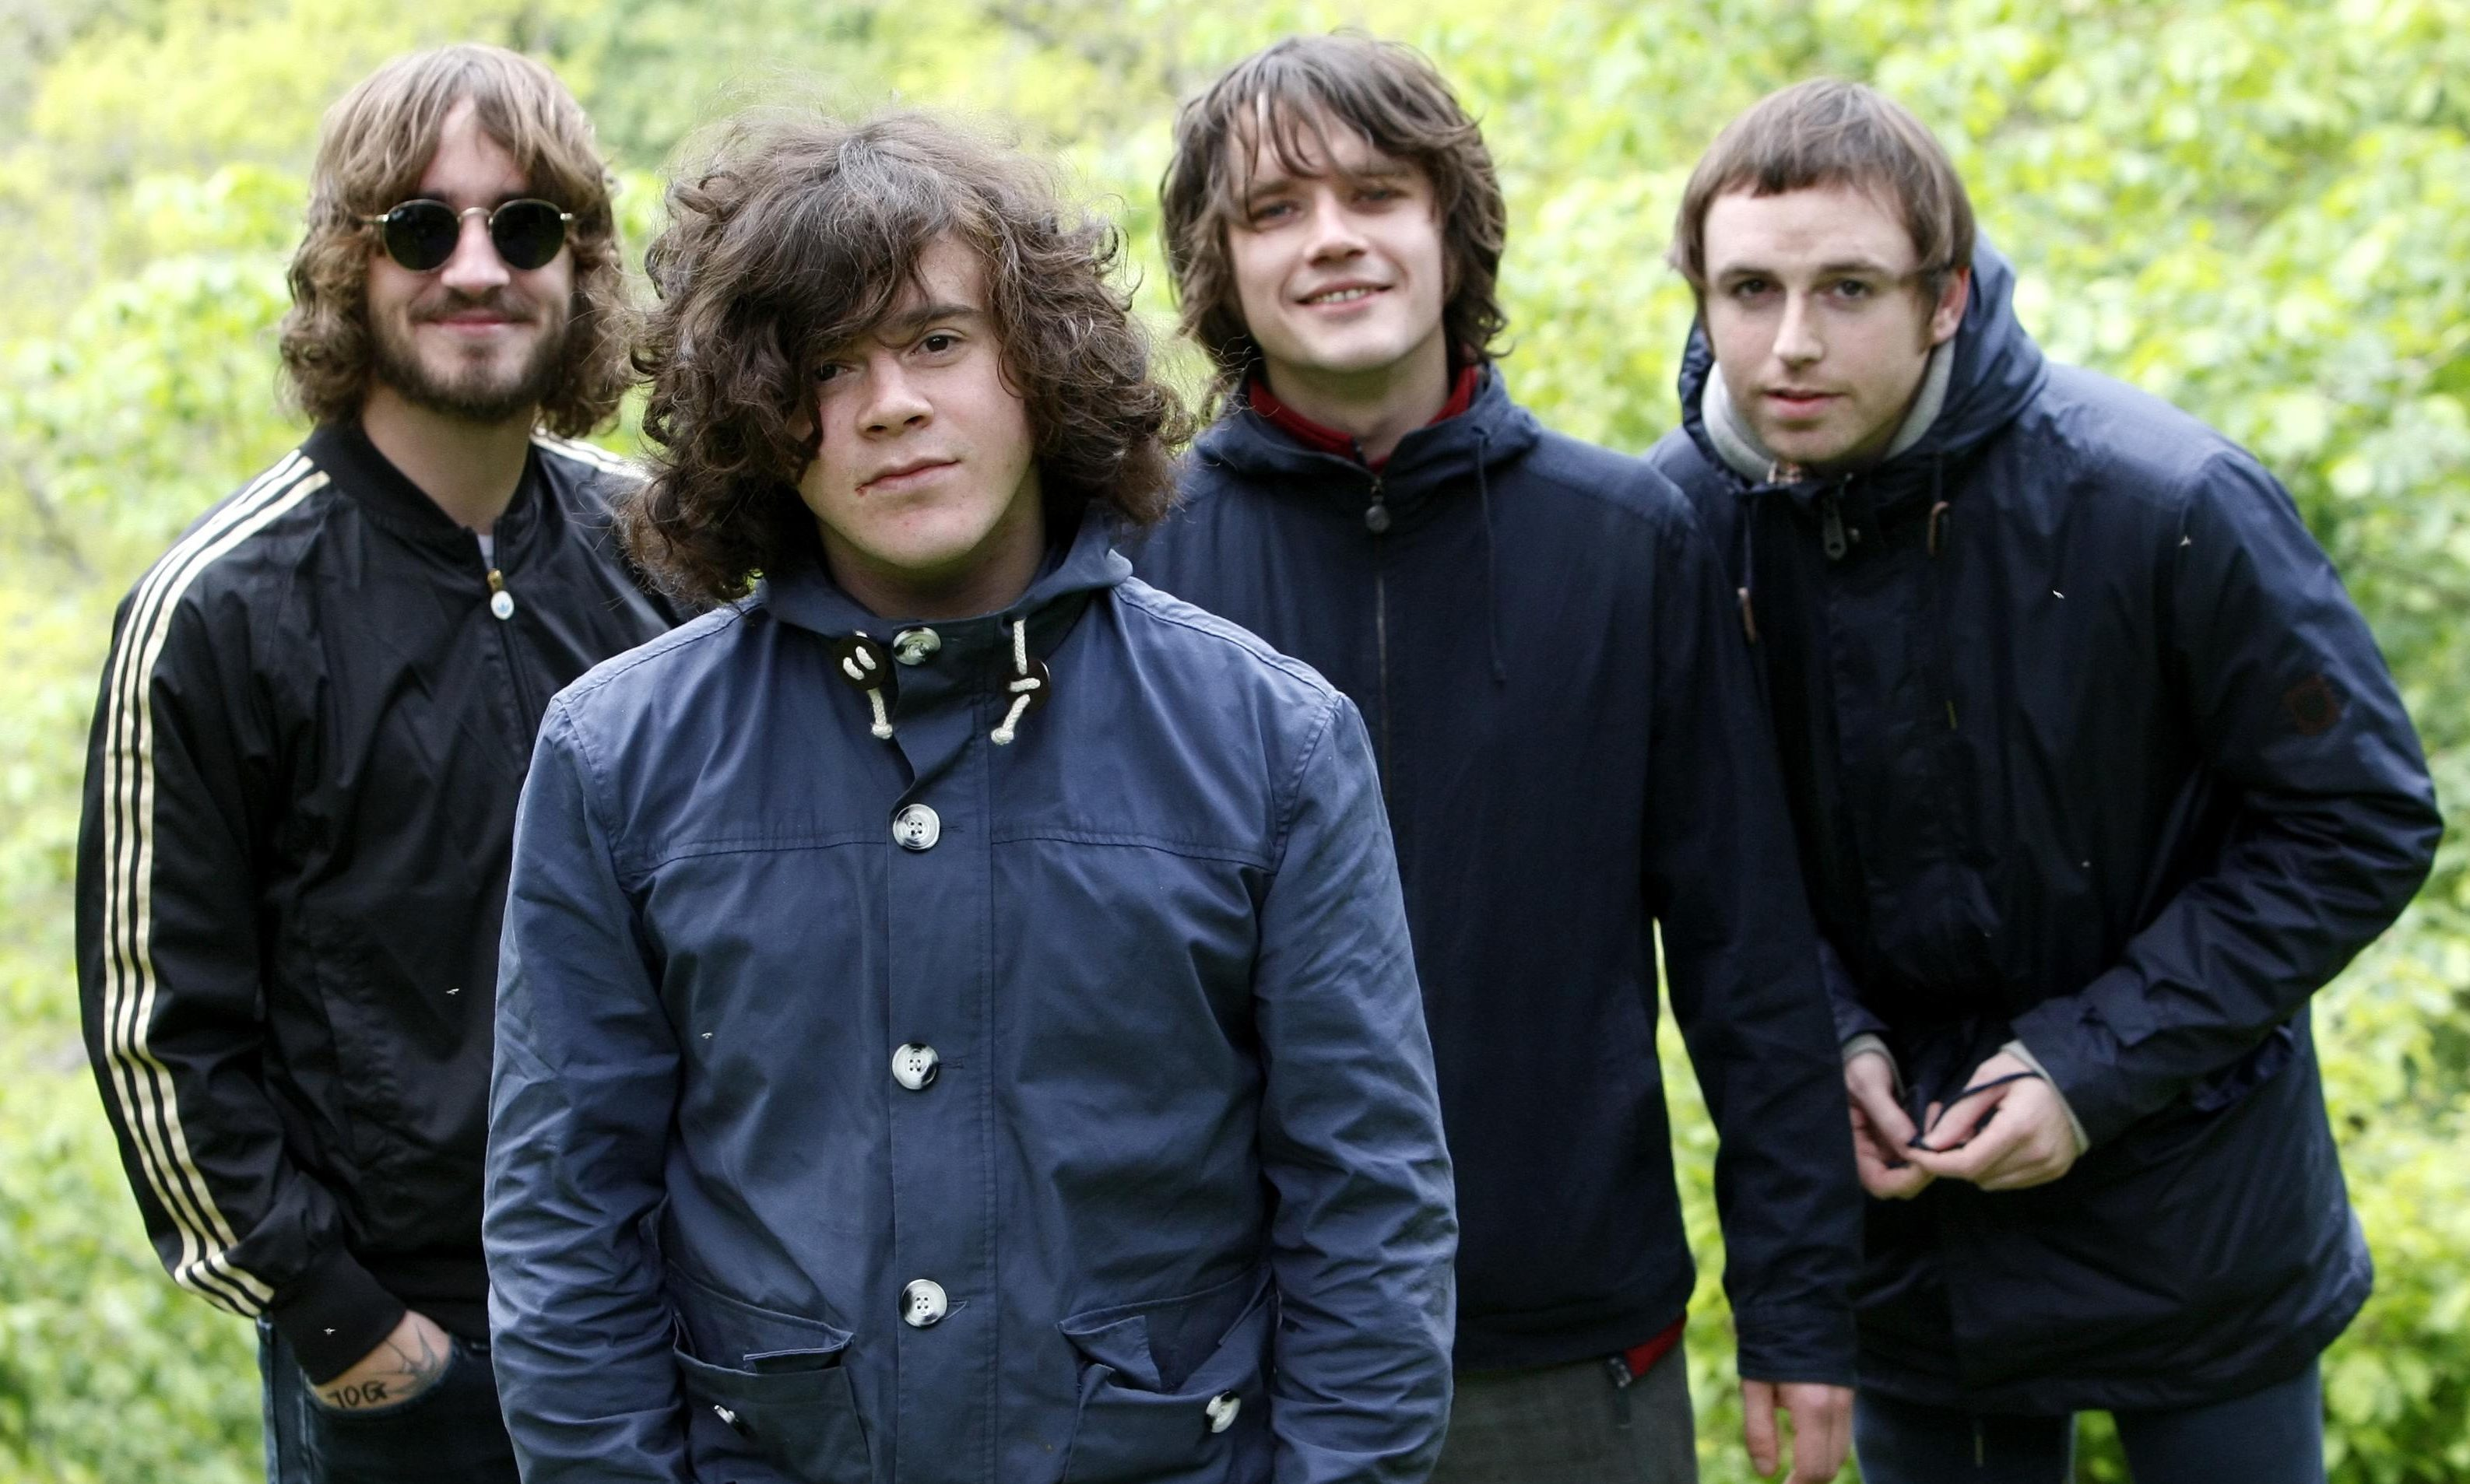 The View members Peter Reilly, Kyle Falconer, Kieren Webster and Steven Morrison.